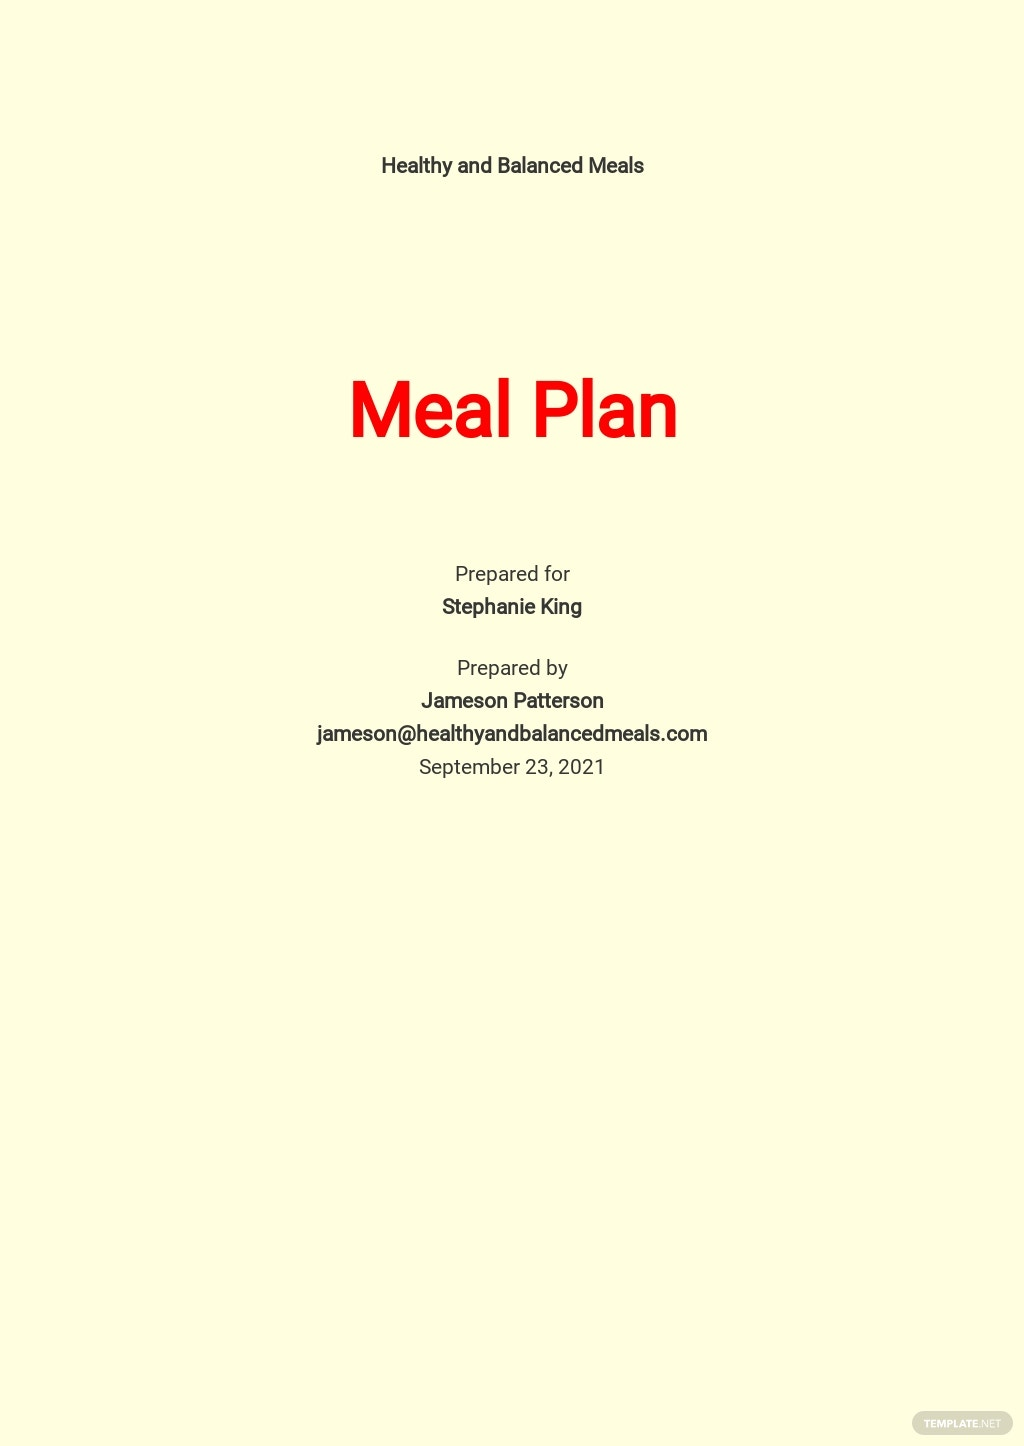 Daily Meal Plan Template.jpe